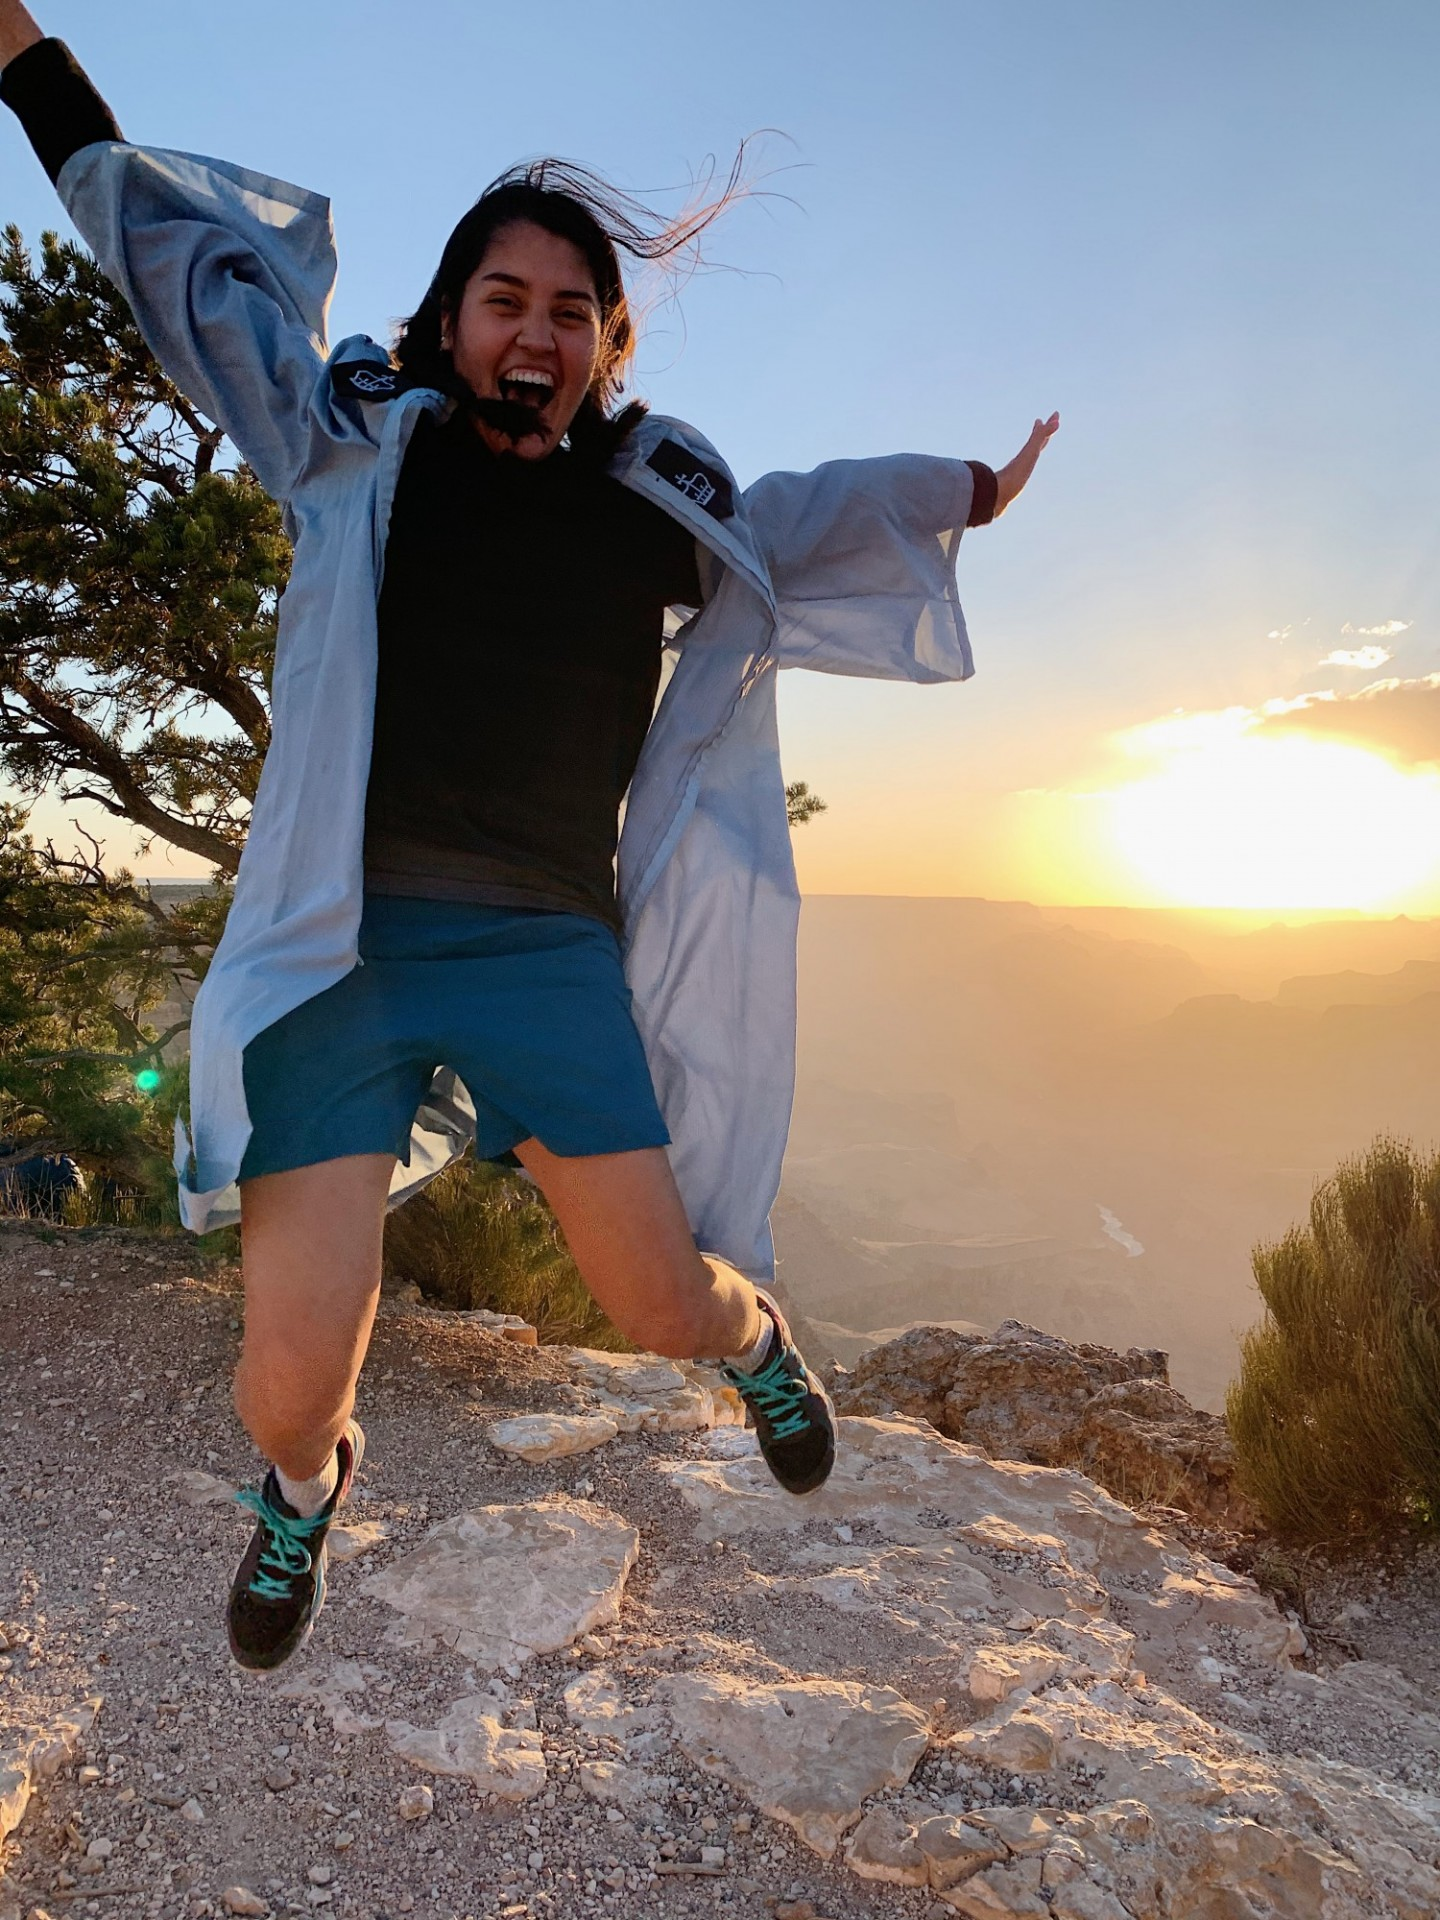 Celia Orduna jumps in Commencement regalia on the rim of the Grand Canyon.